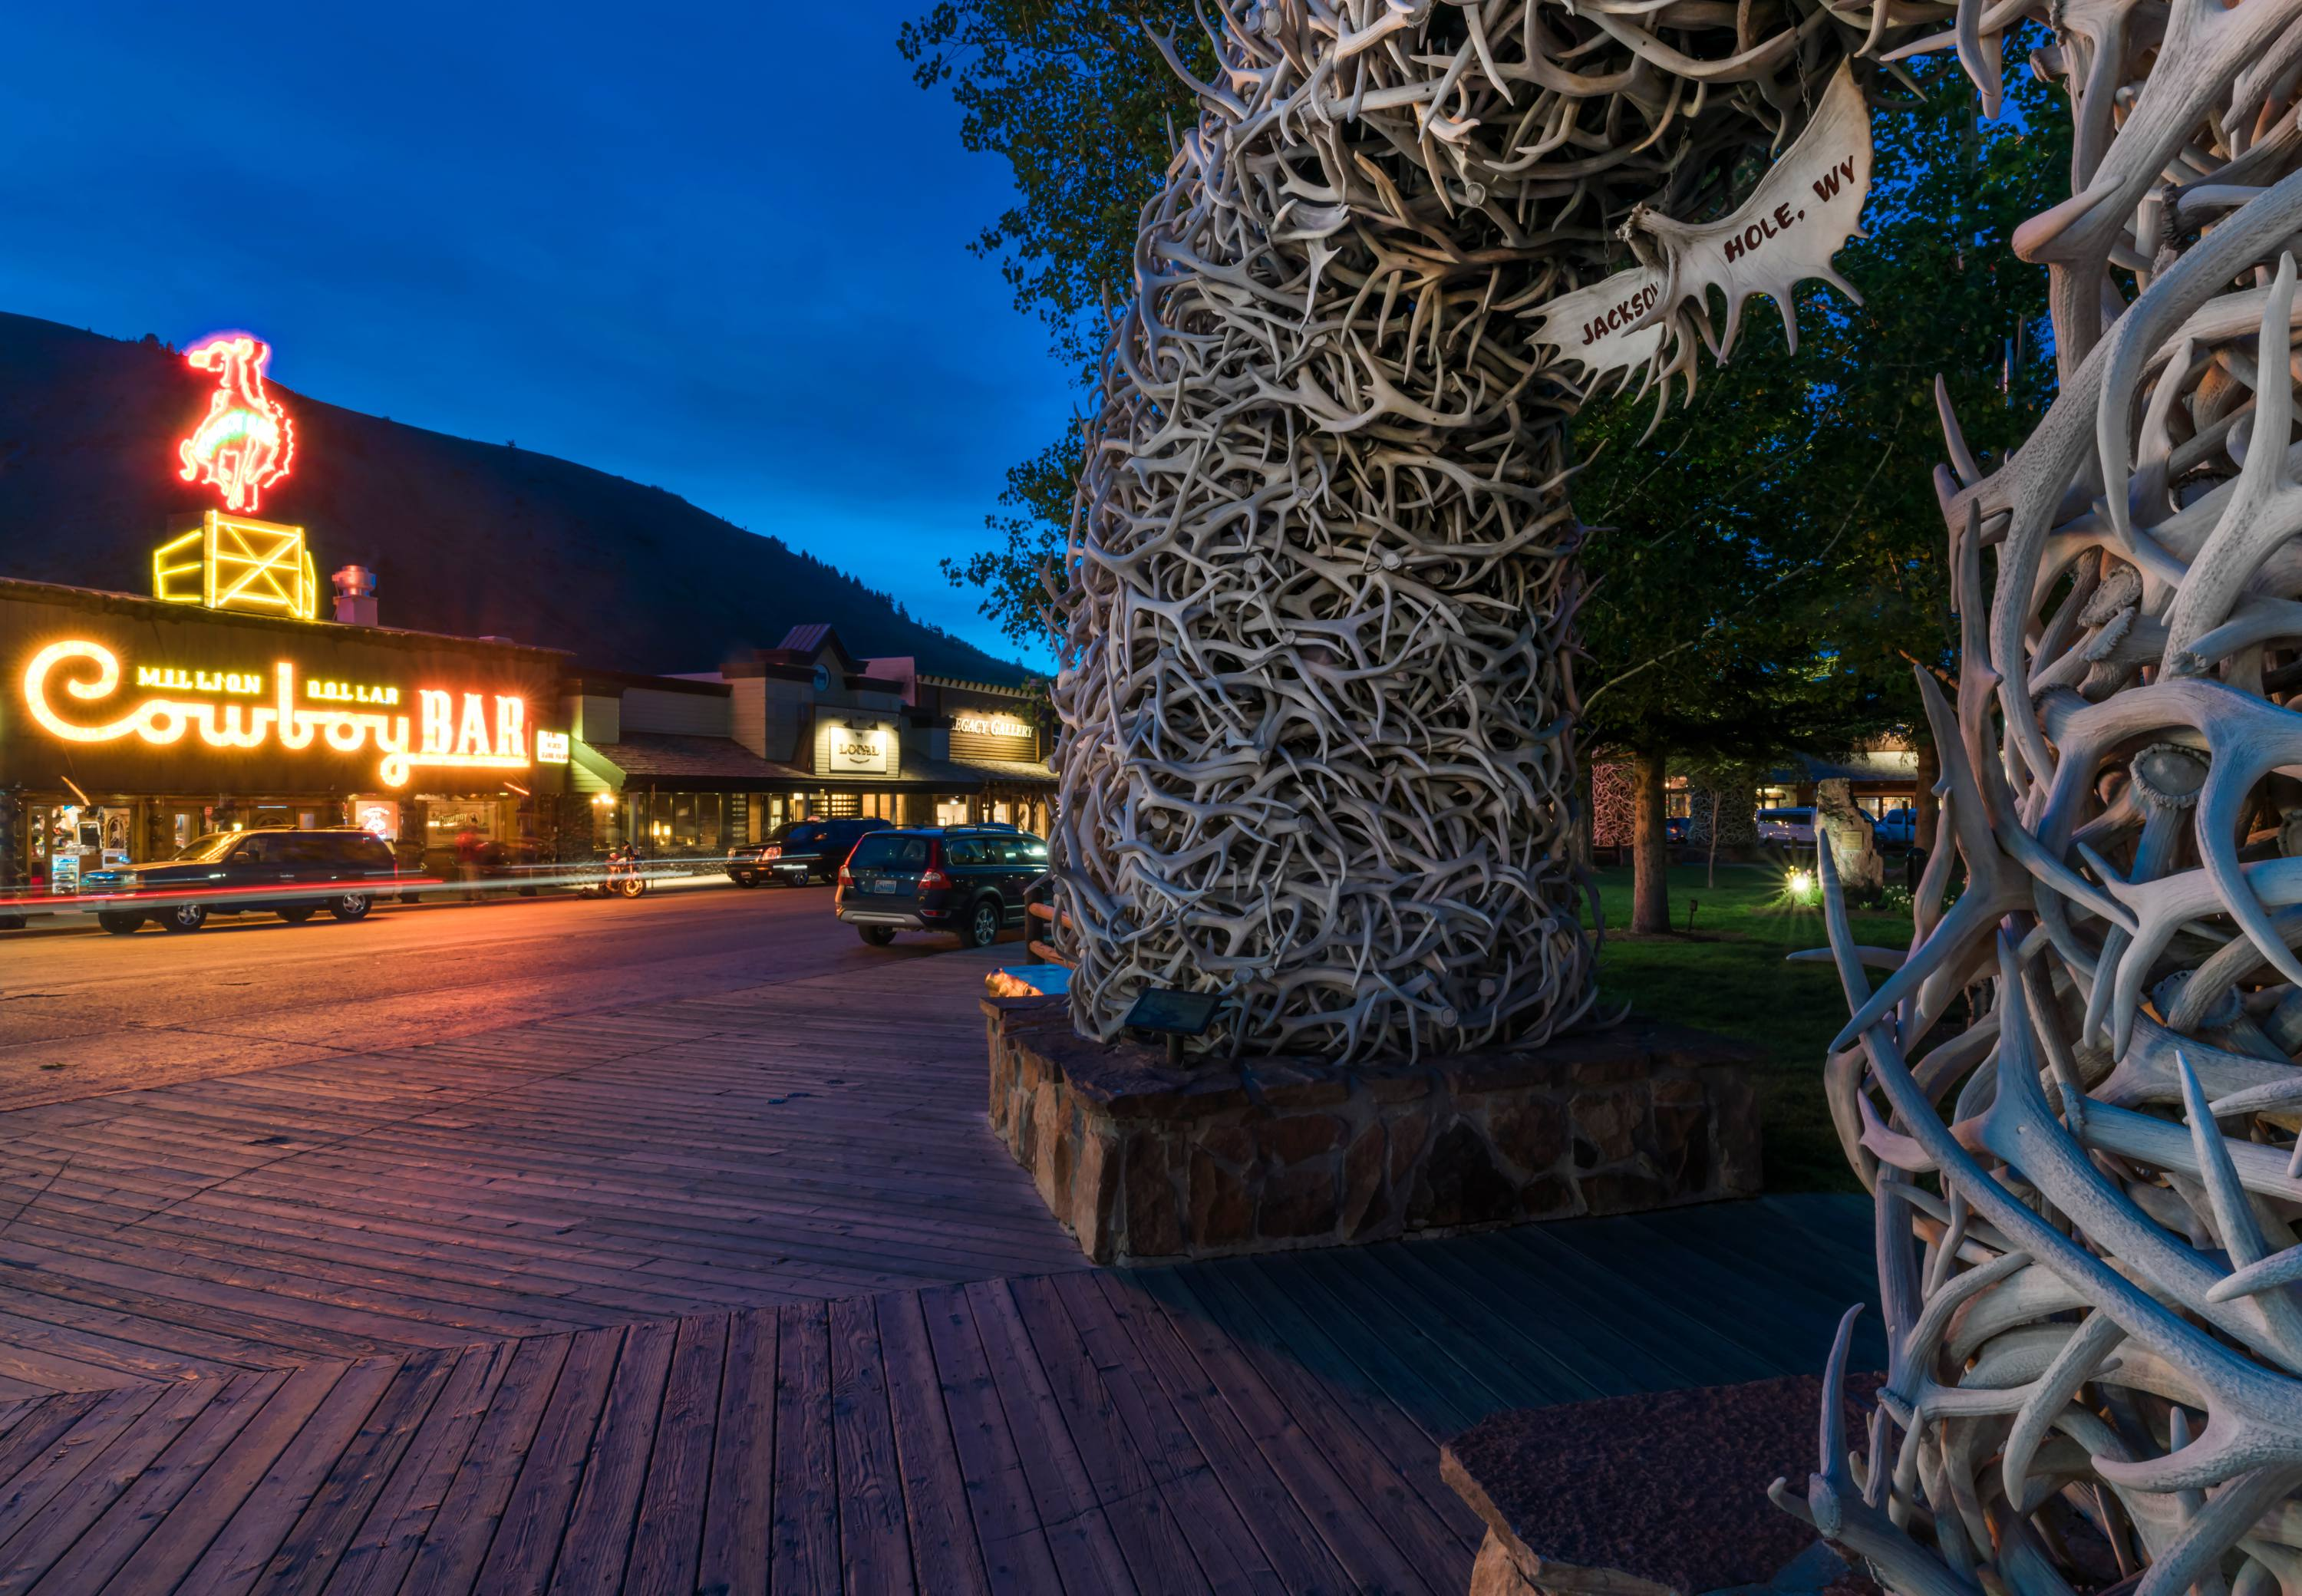 SpringHill Suites by Marriott Jackson Hole image 13